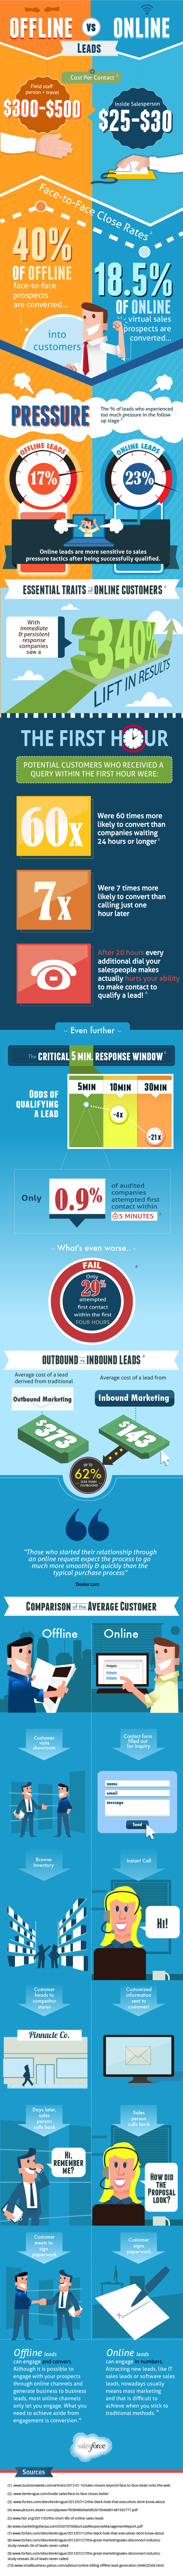 managing sales leads infographic